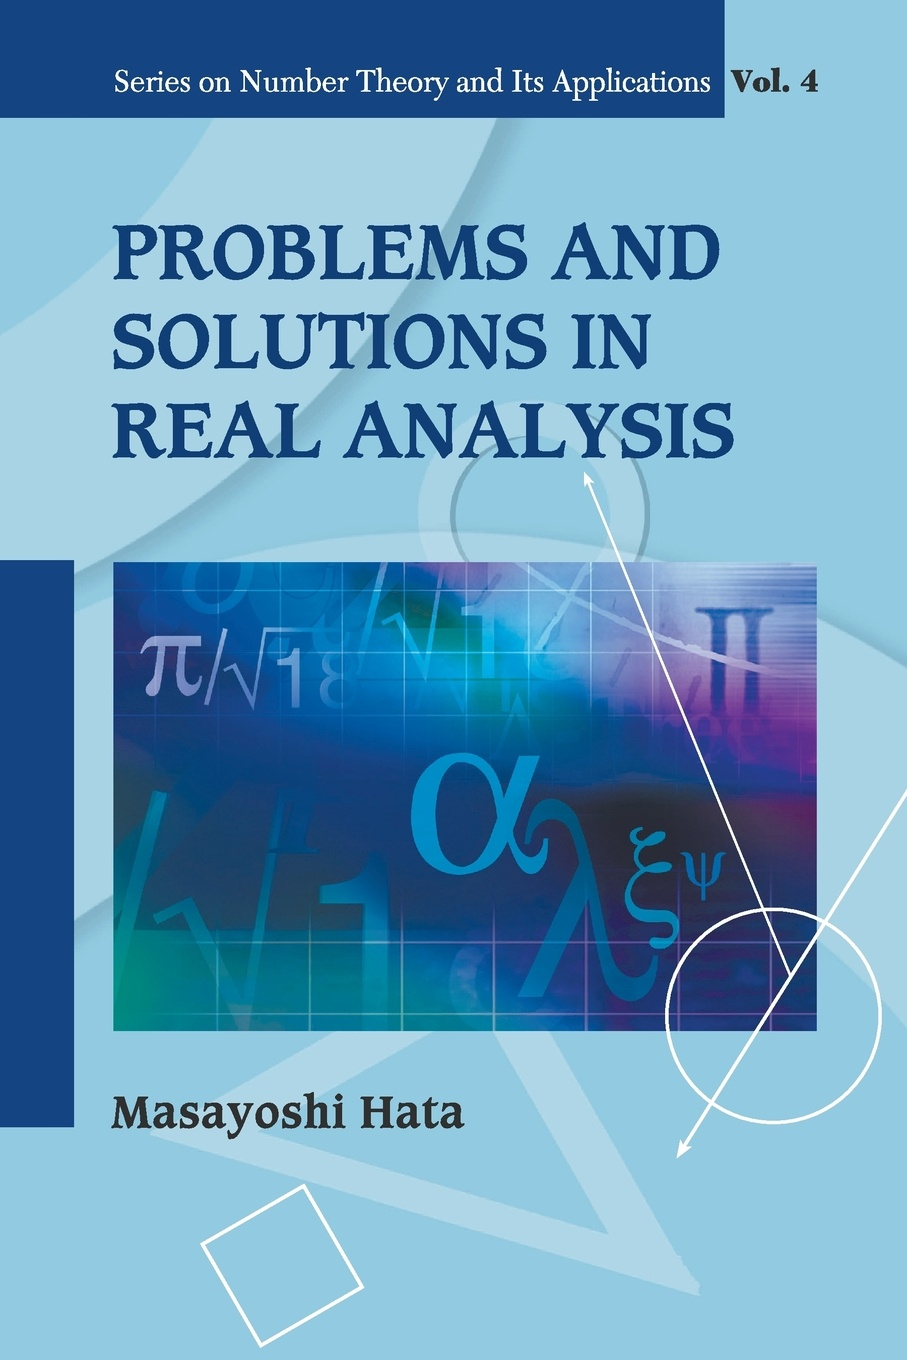 лучшая цена Masayoshi Hata Problems and Solutions in Real Analysis